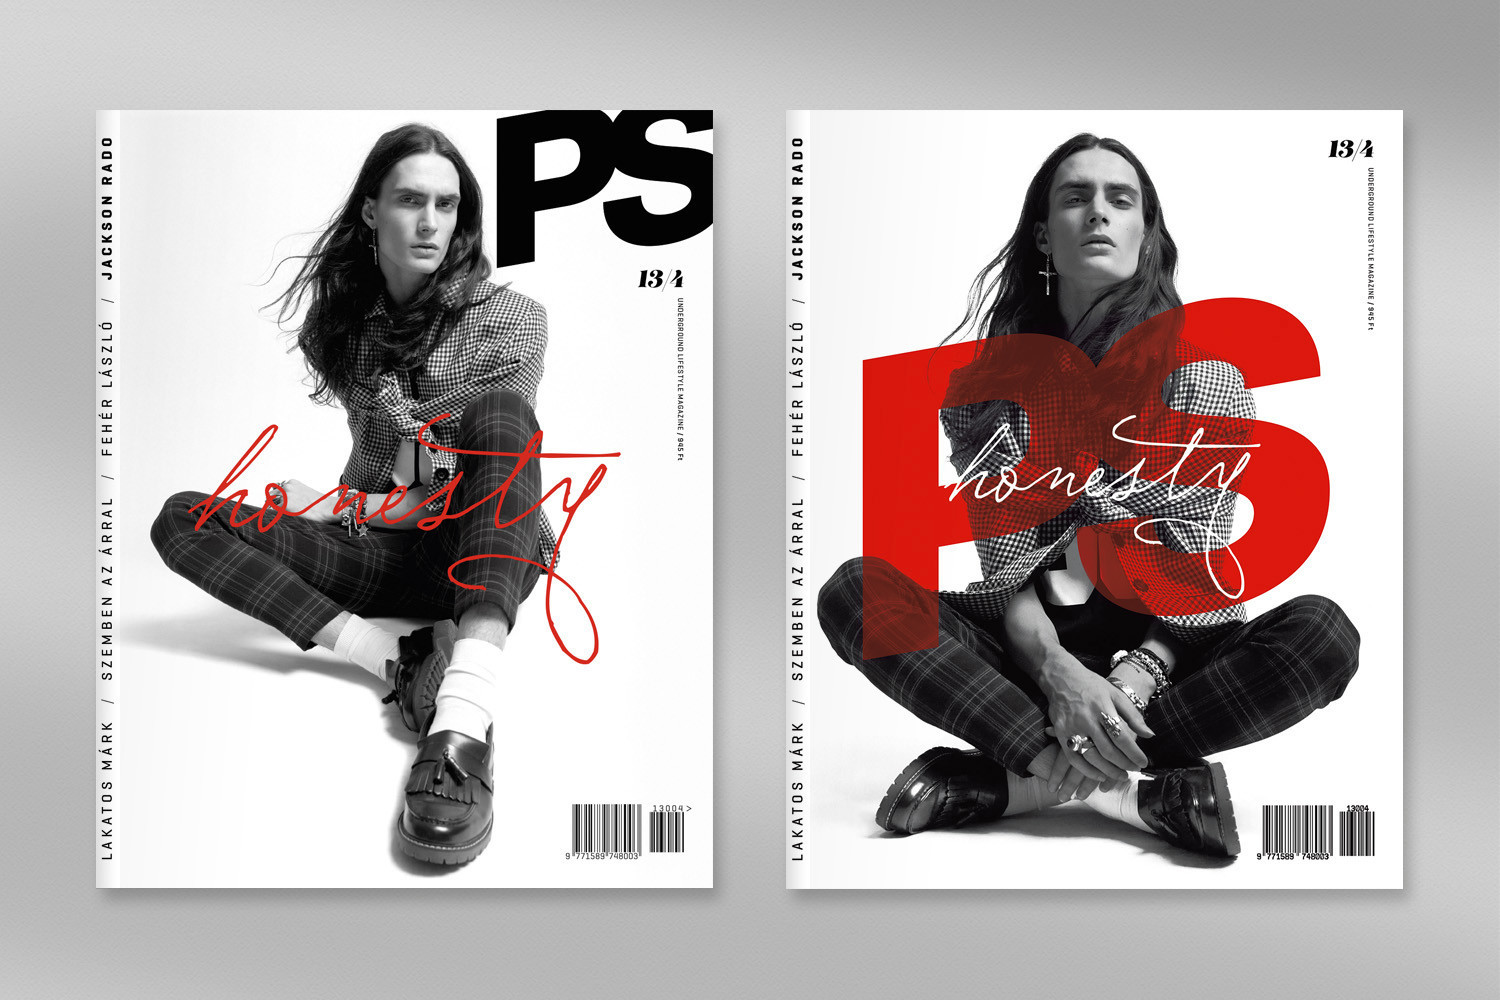 PS magazin - 13/4 - 1 by José Simon